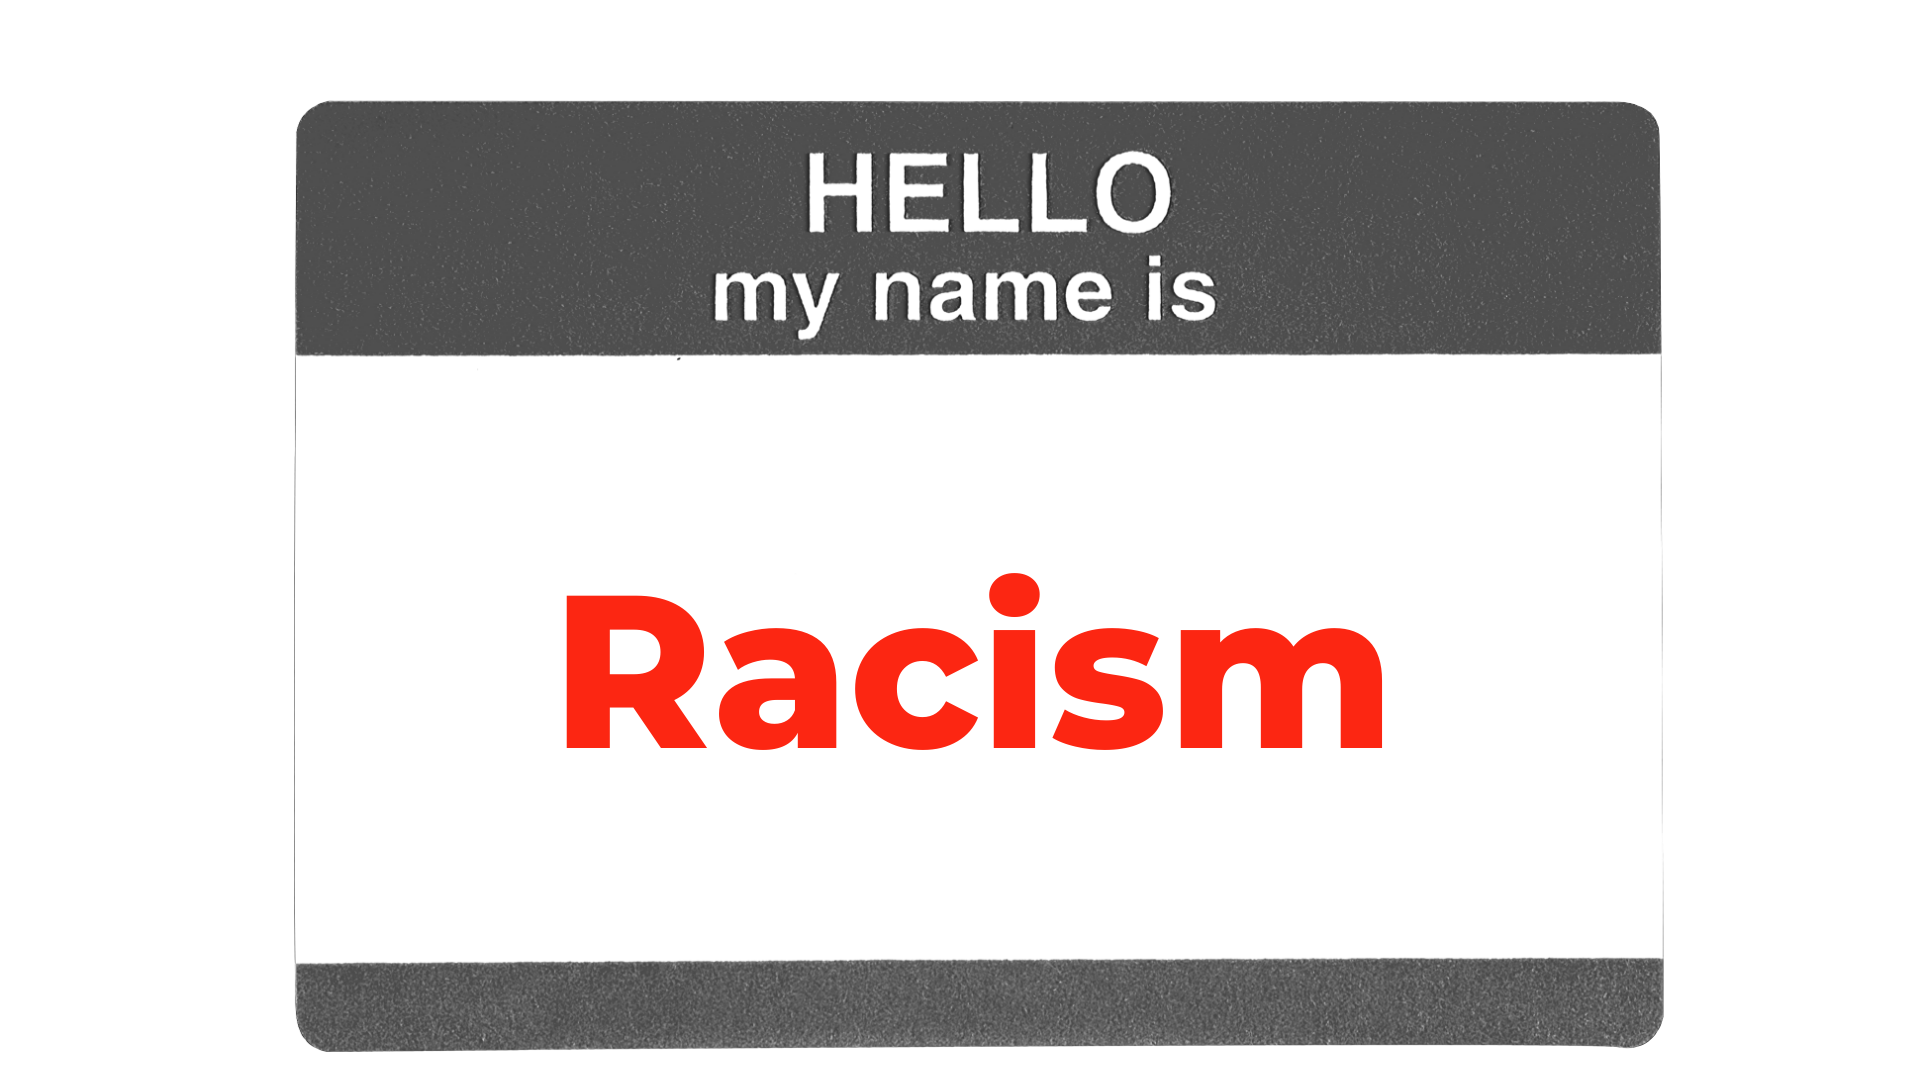 Racism in red letters on a gray nametag